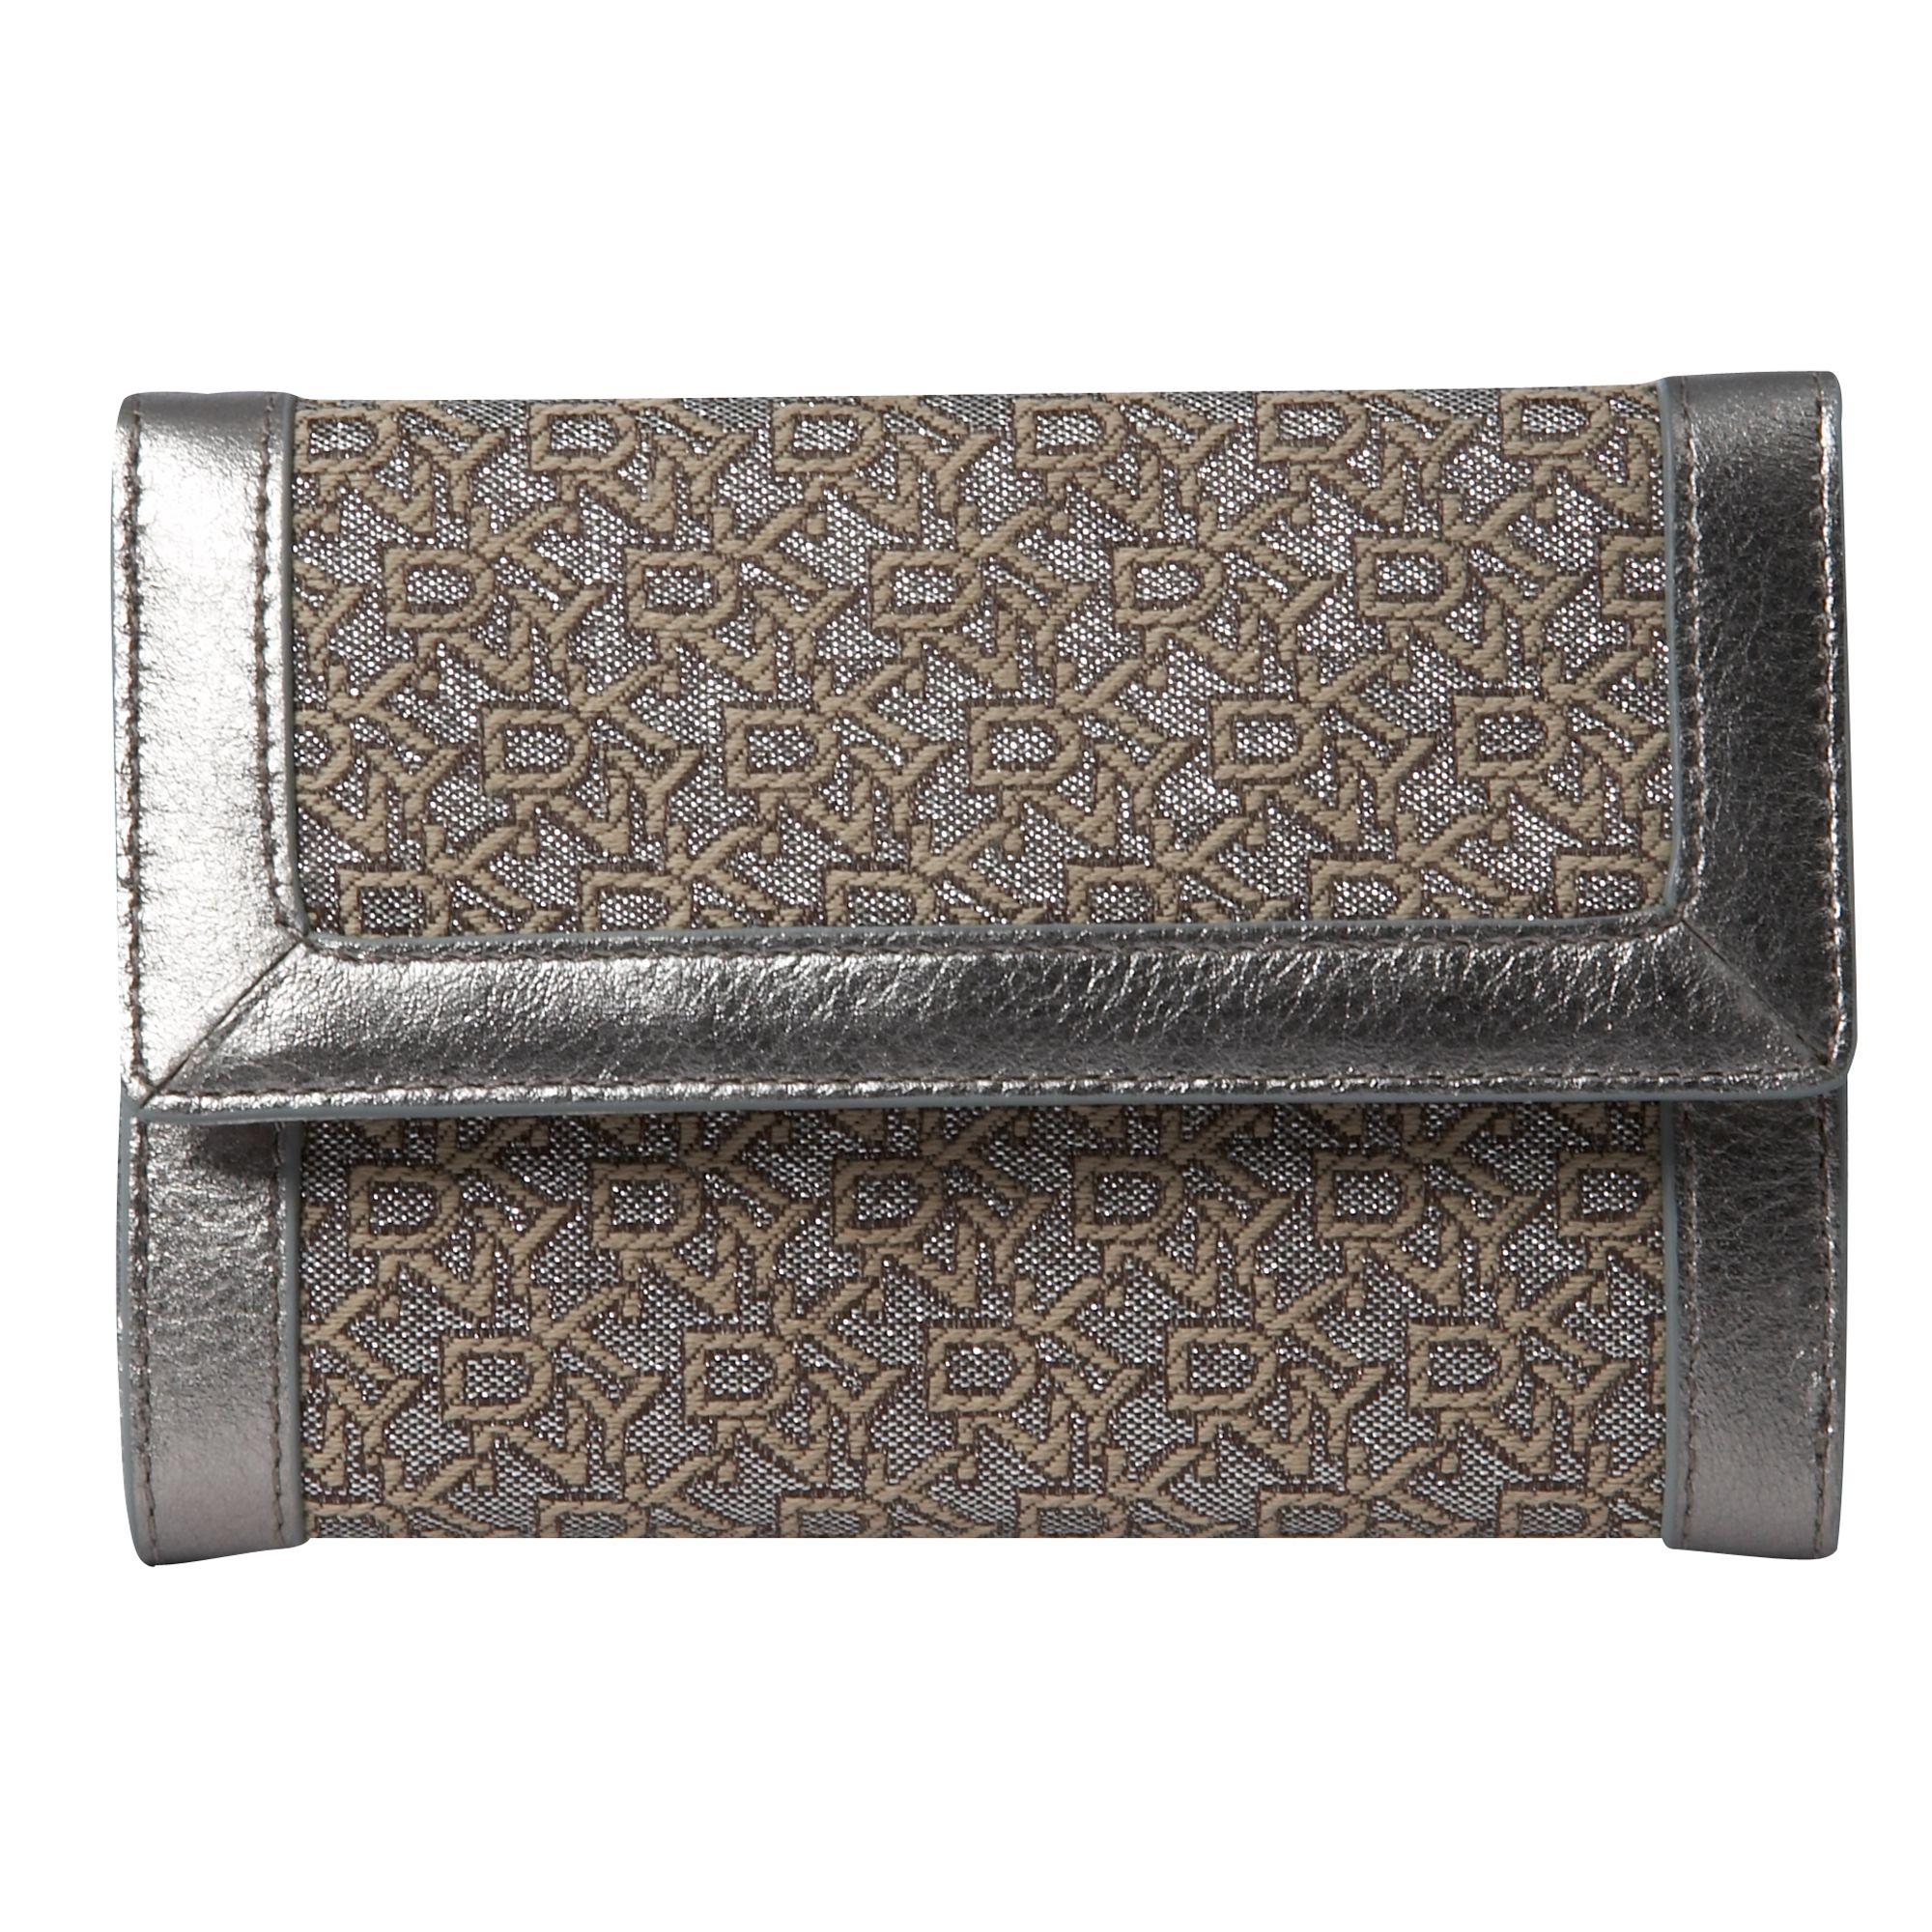 DKNY Town & Country metallic nylon flap-over purse product image